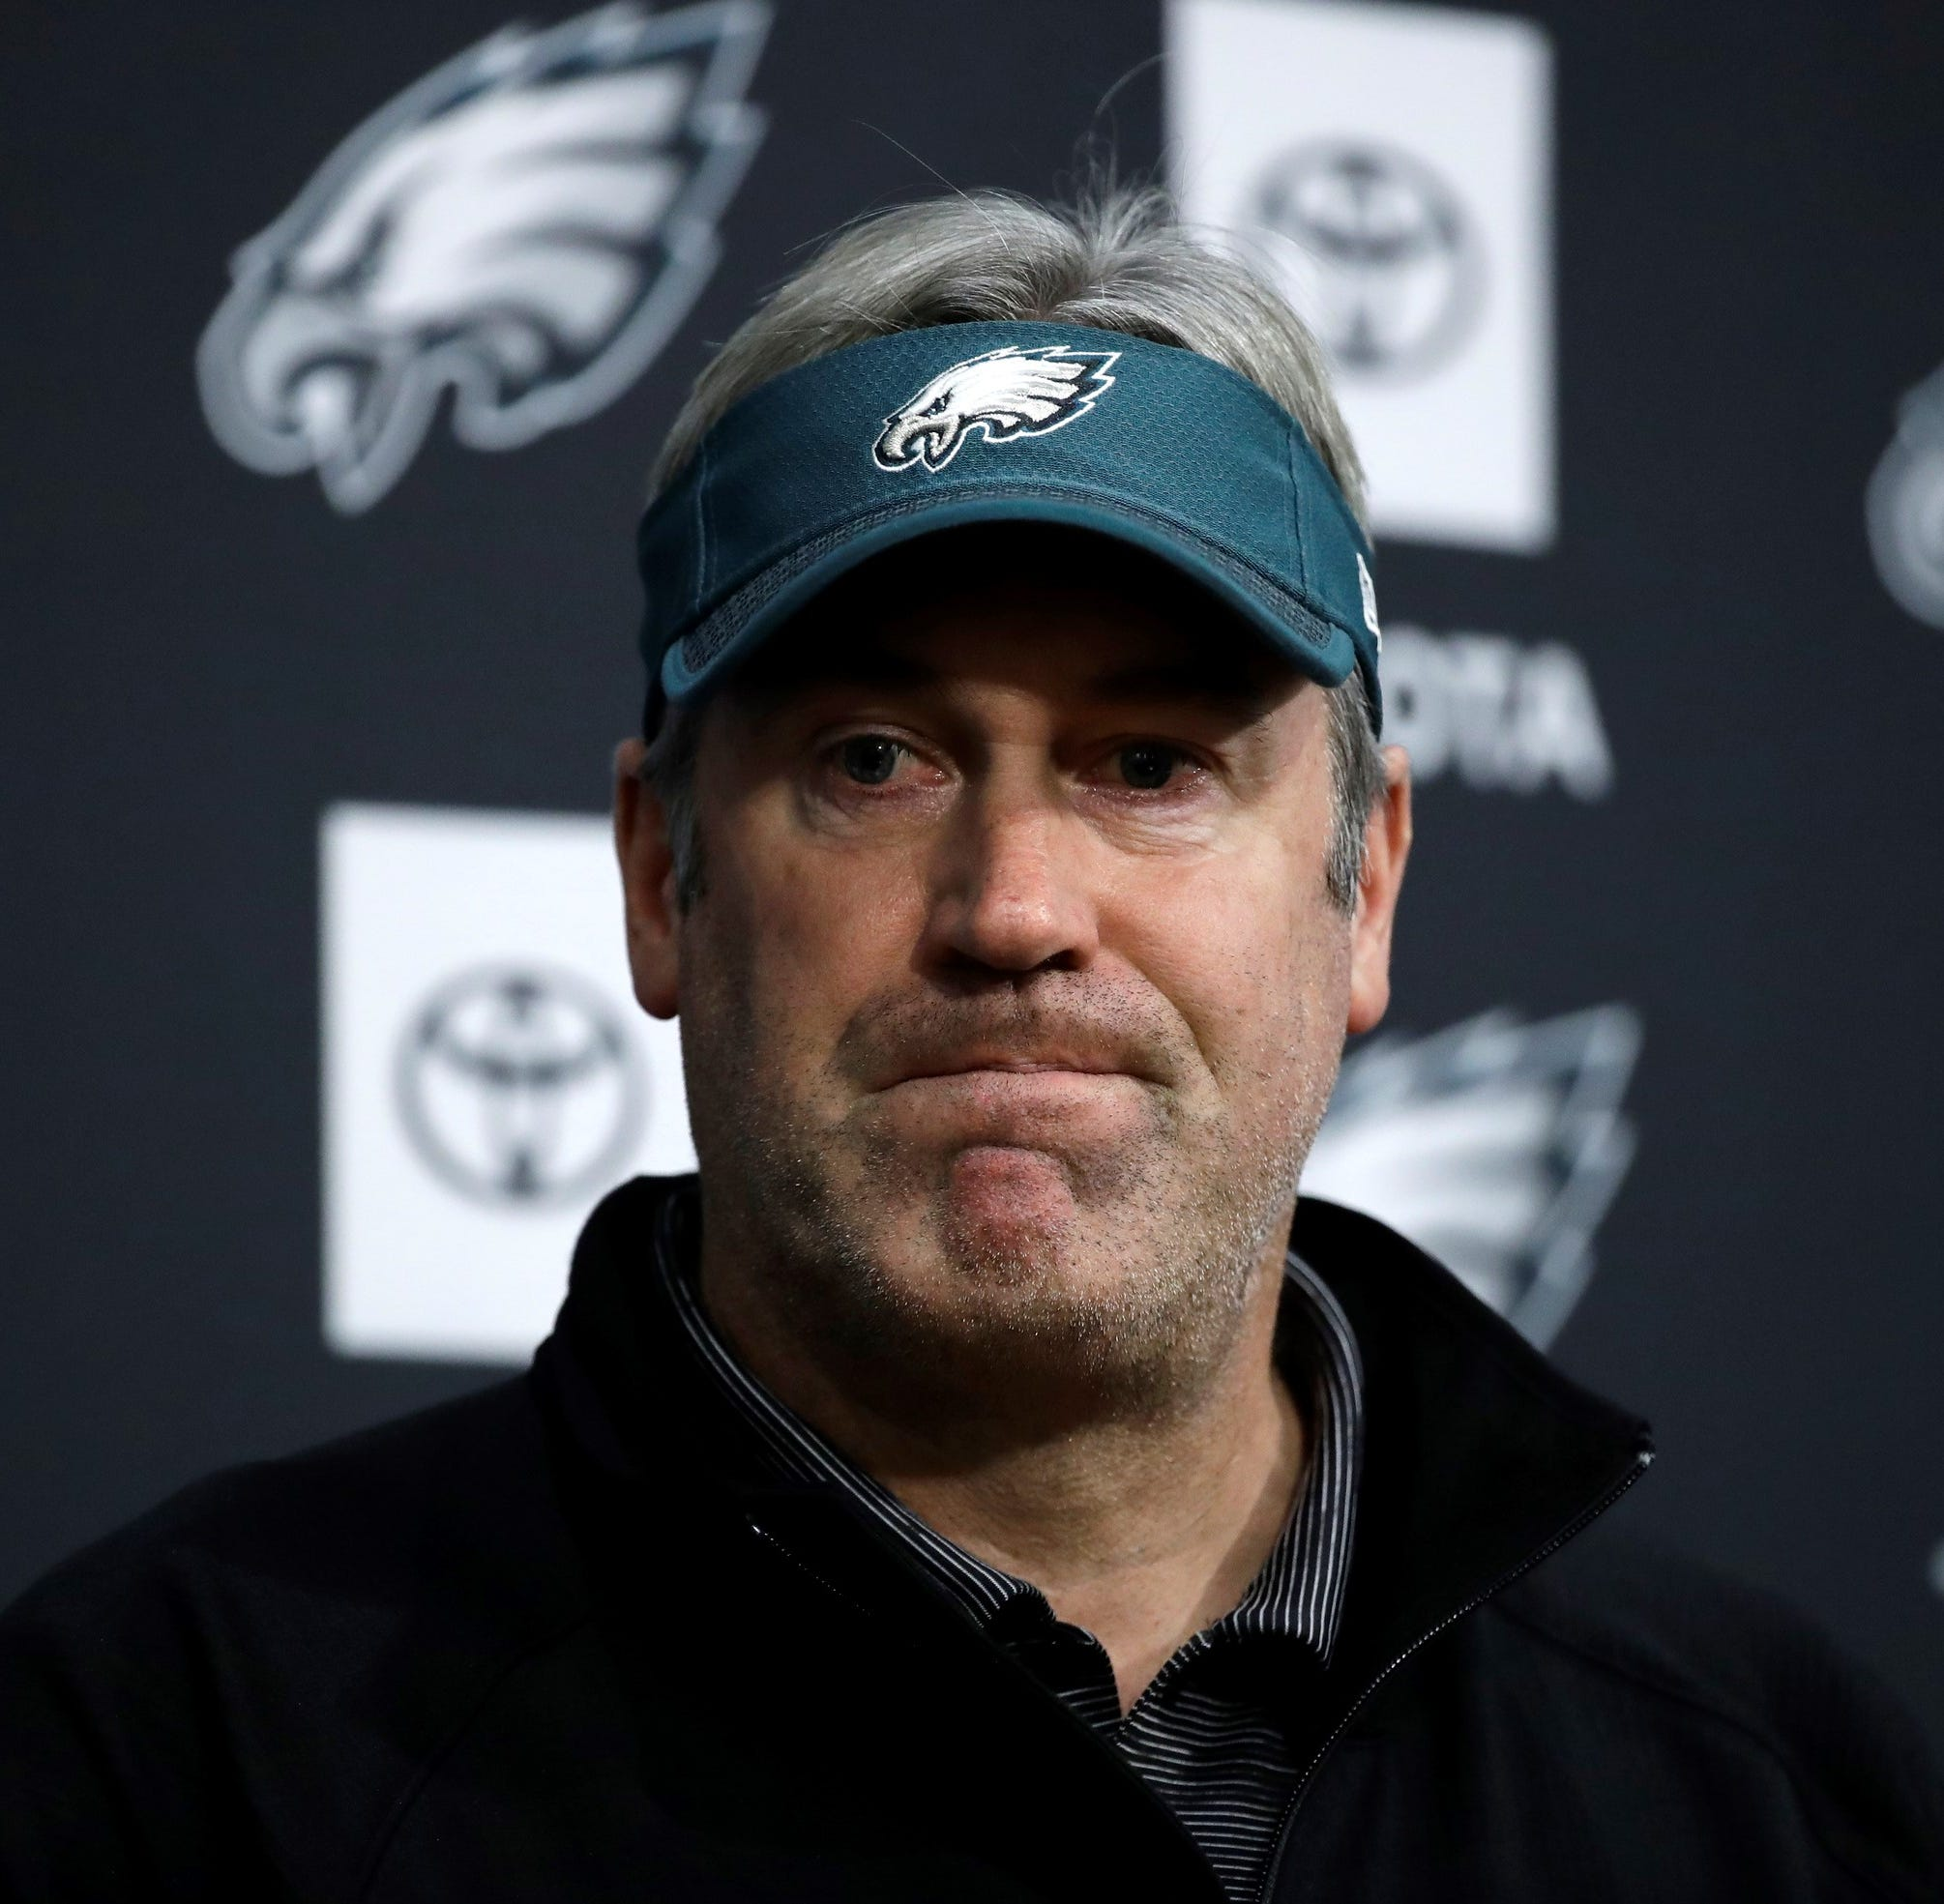 SIELSKI: Doug Pederson has stopped being fearless, and it's costing Philadelphia Eagles